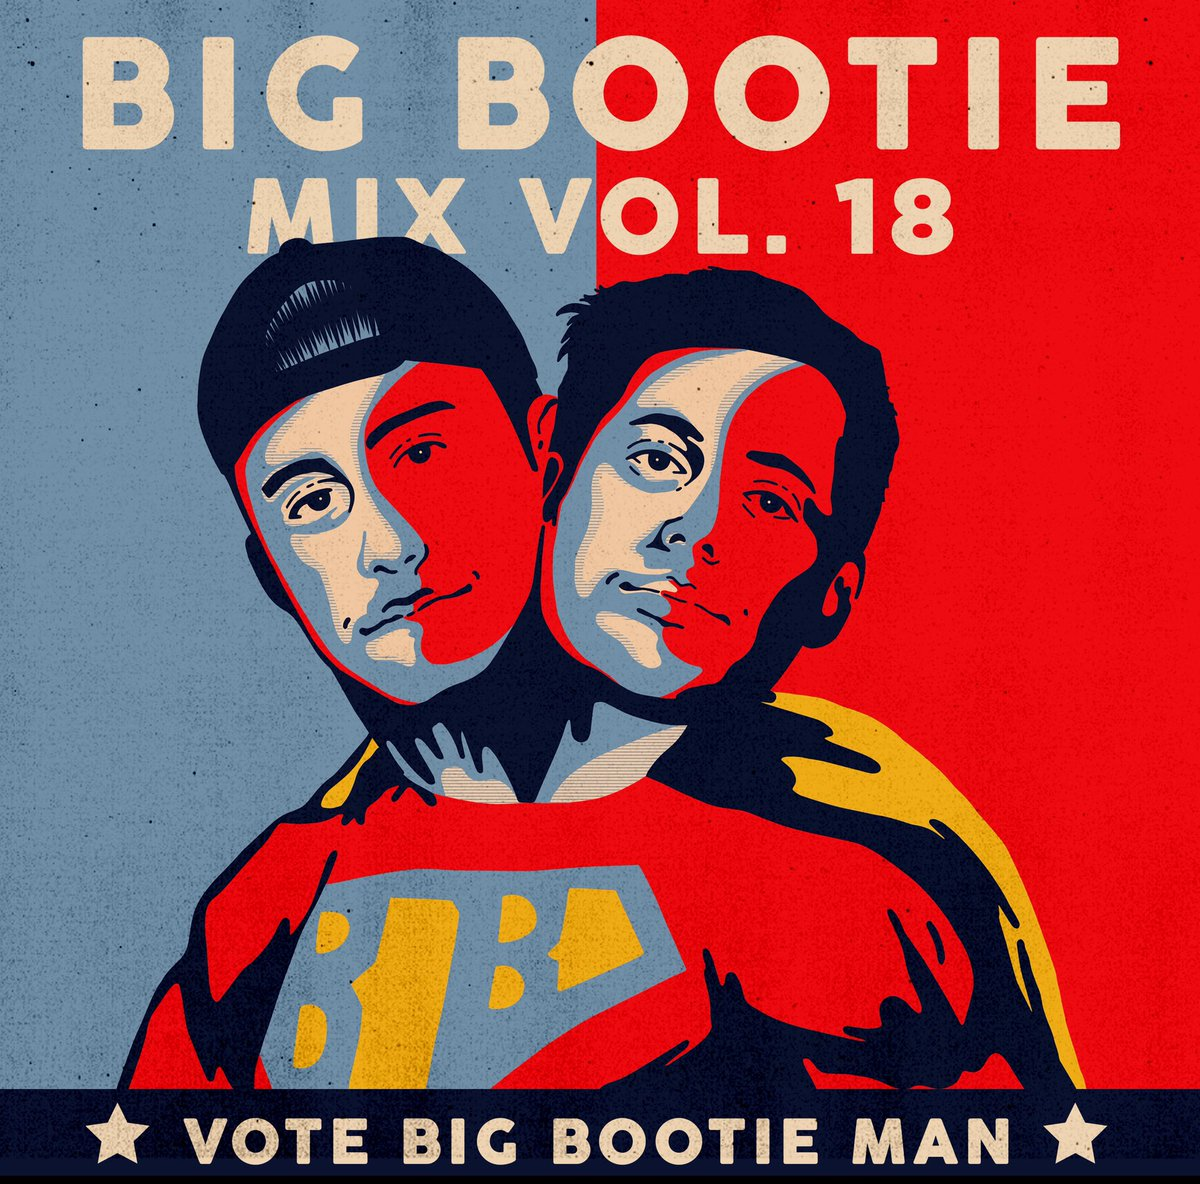 BIG BOOTIE 18 PREMIERING SATURDAY NIGHT🔥tag ur crew below and we'll pick a few groups to send free tix to the virtual concert (or meet & greet upgrades if you already have tix) 🤠  BB18 premiere info: https://t.co/uwMIzfOaVo https://t.co/X6ahDM8wzc